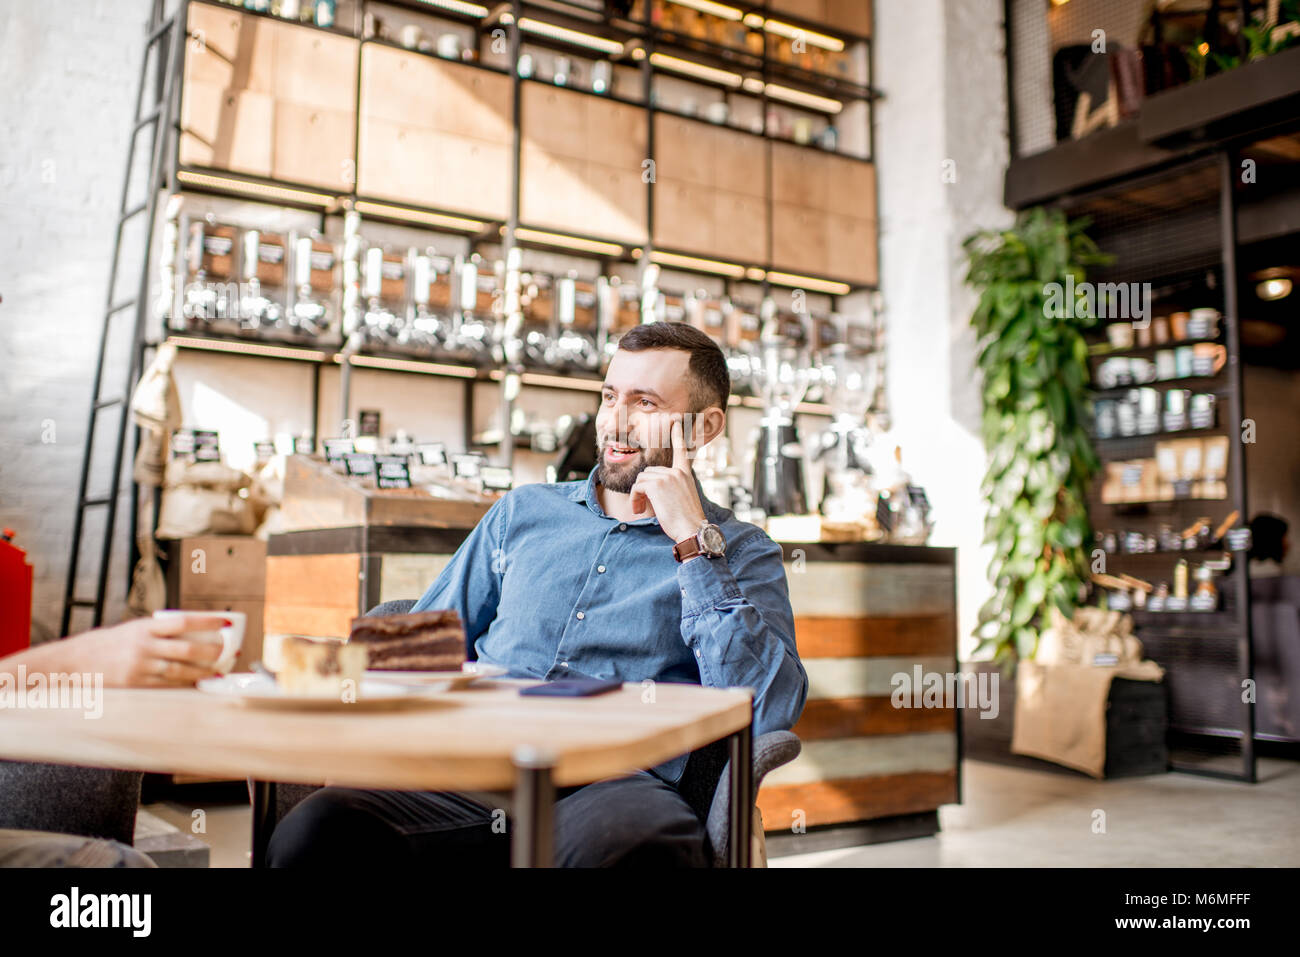 Man in the cafe - Stock Image